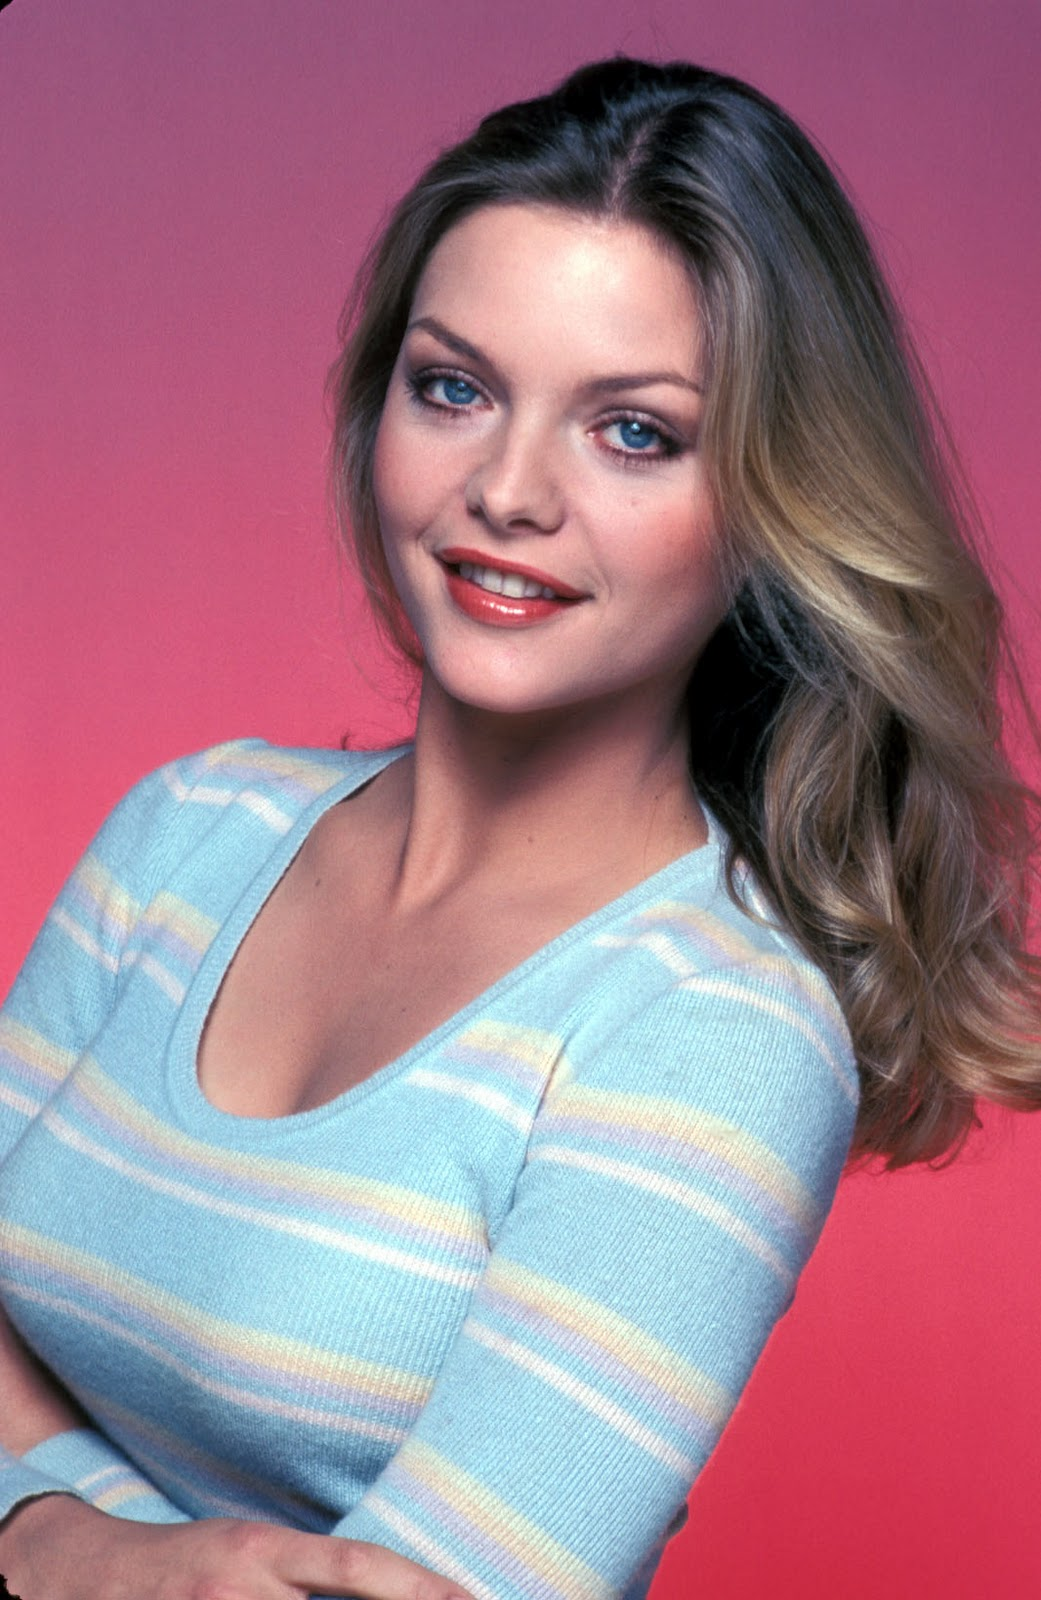 Young Celebrity Photo Gallery: Michelle Pfeiffer as Young ... Michelle Pfeiffer Young